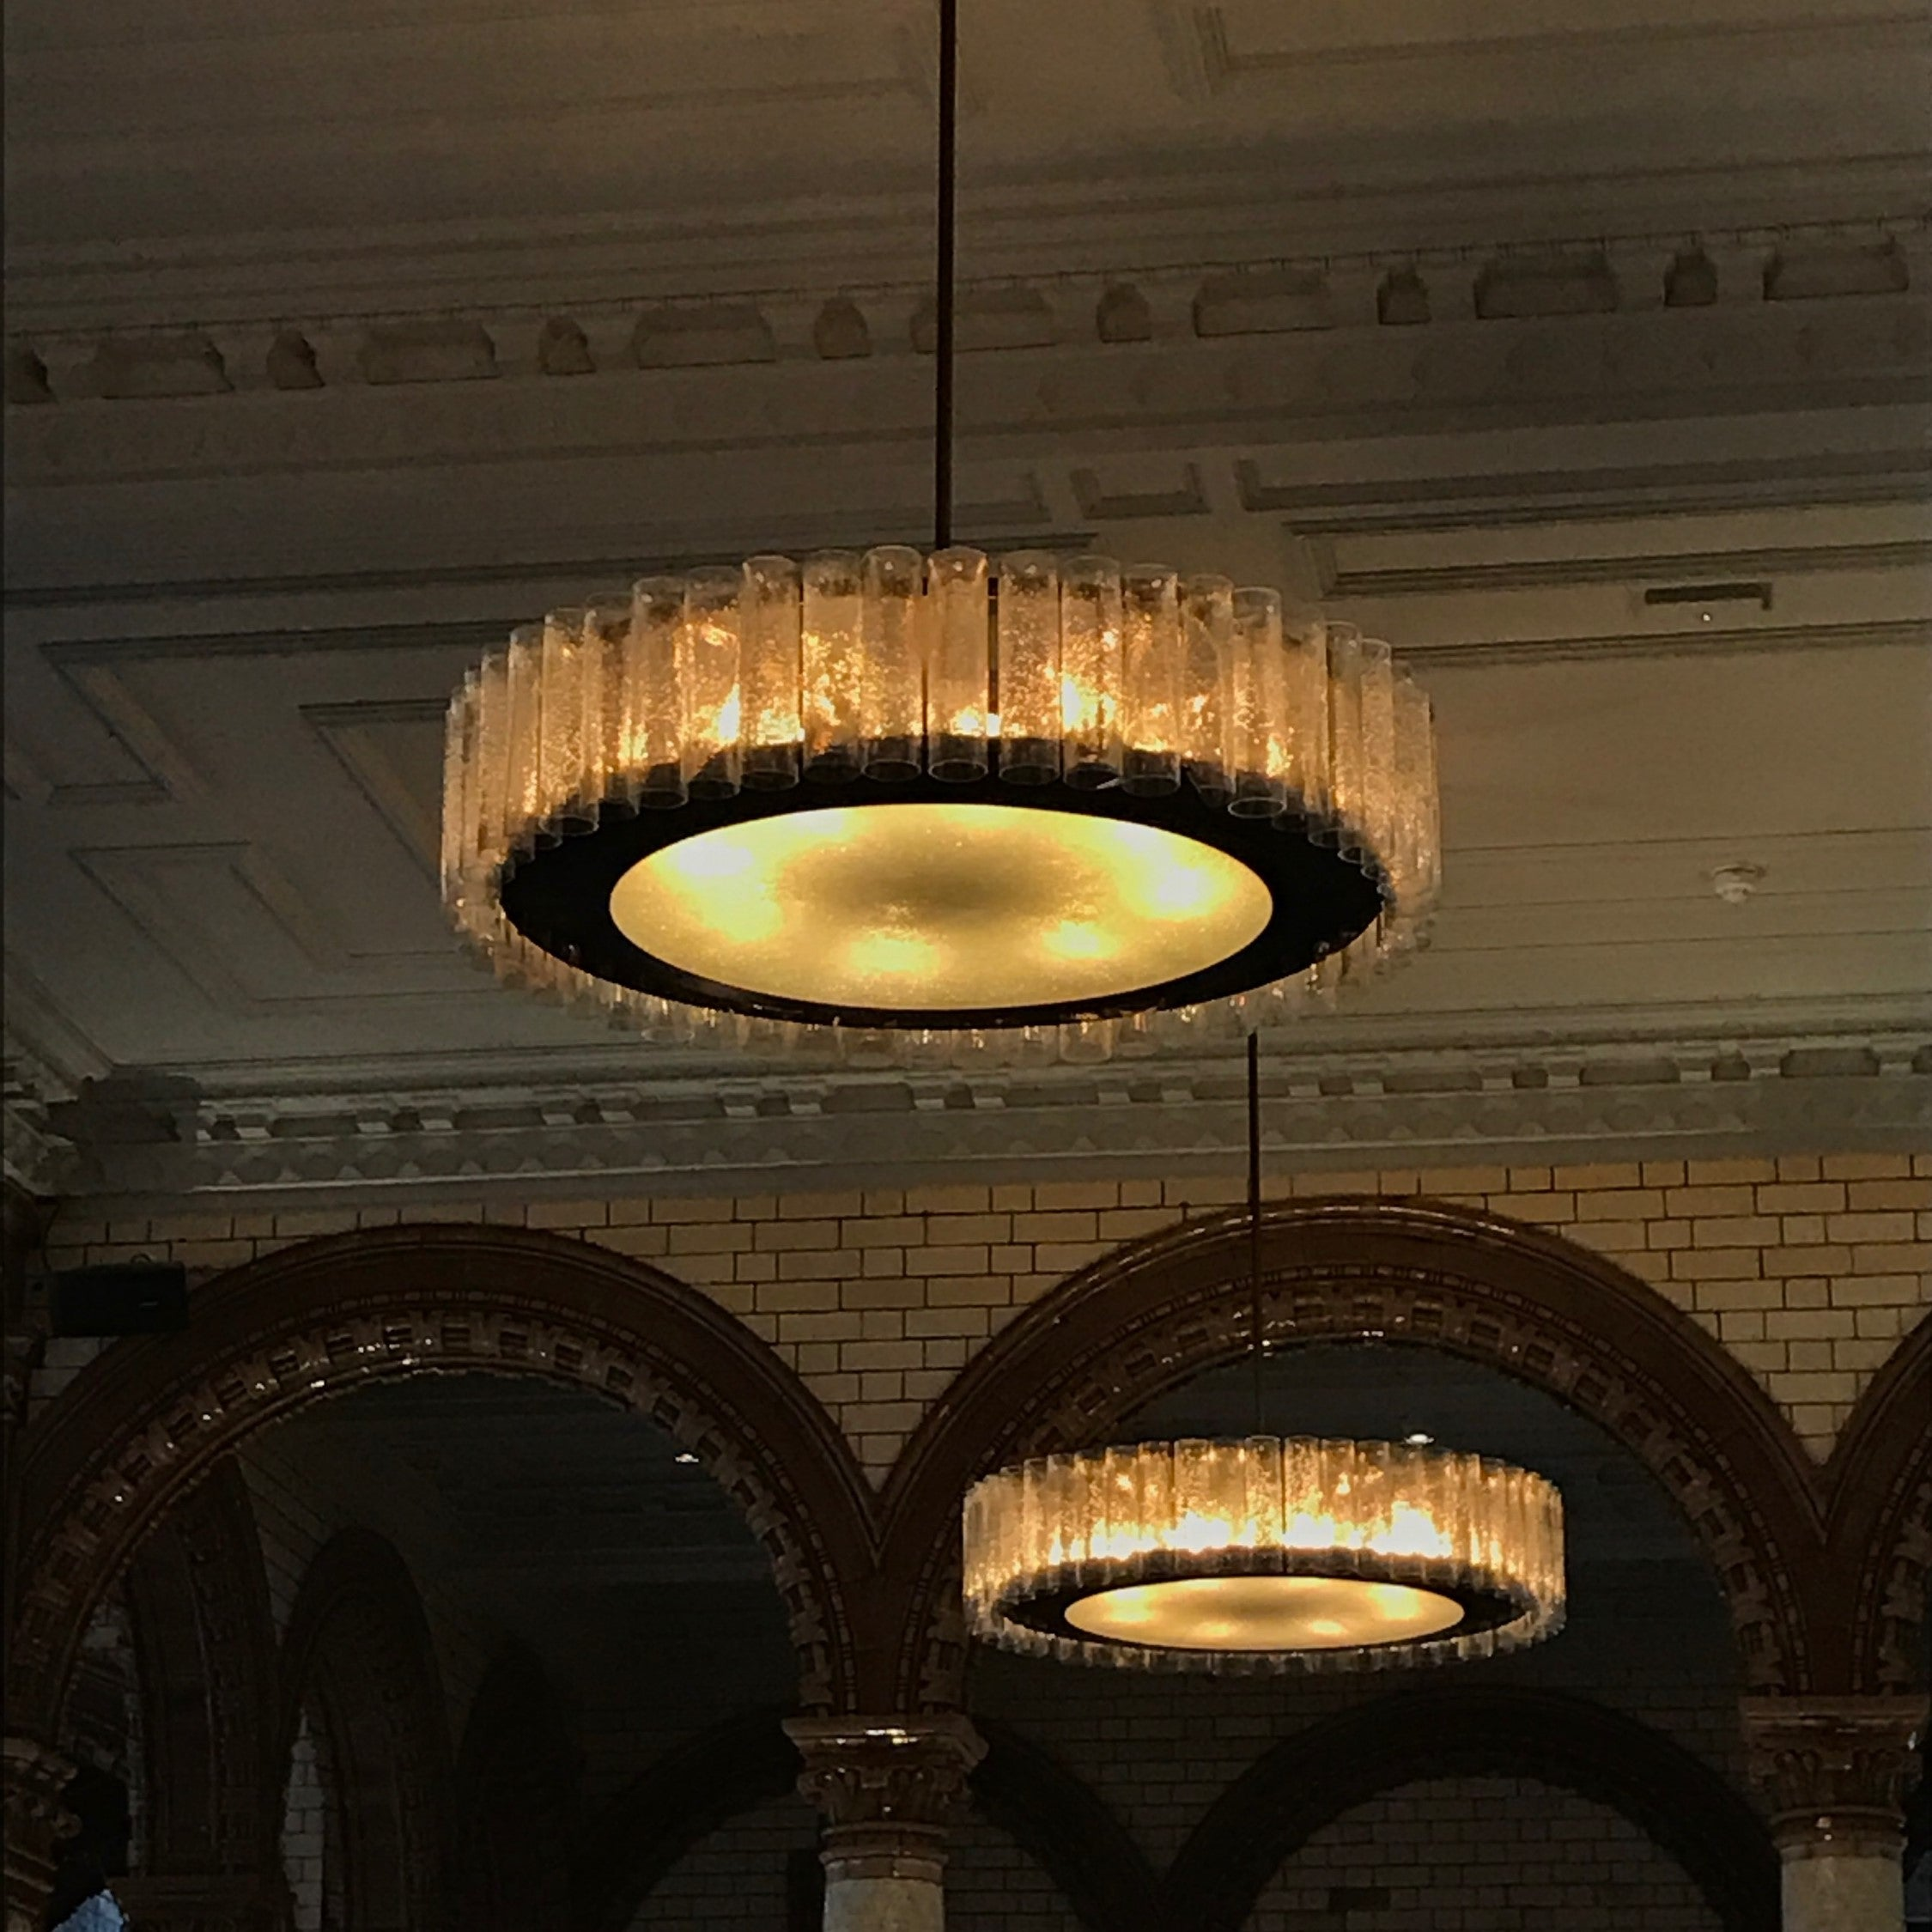 Glass cylinders supplied by Glasform for these stinning chandeliers.